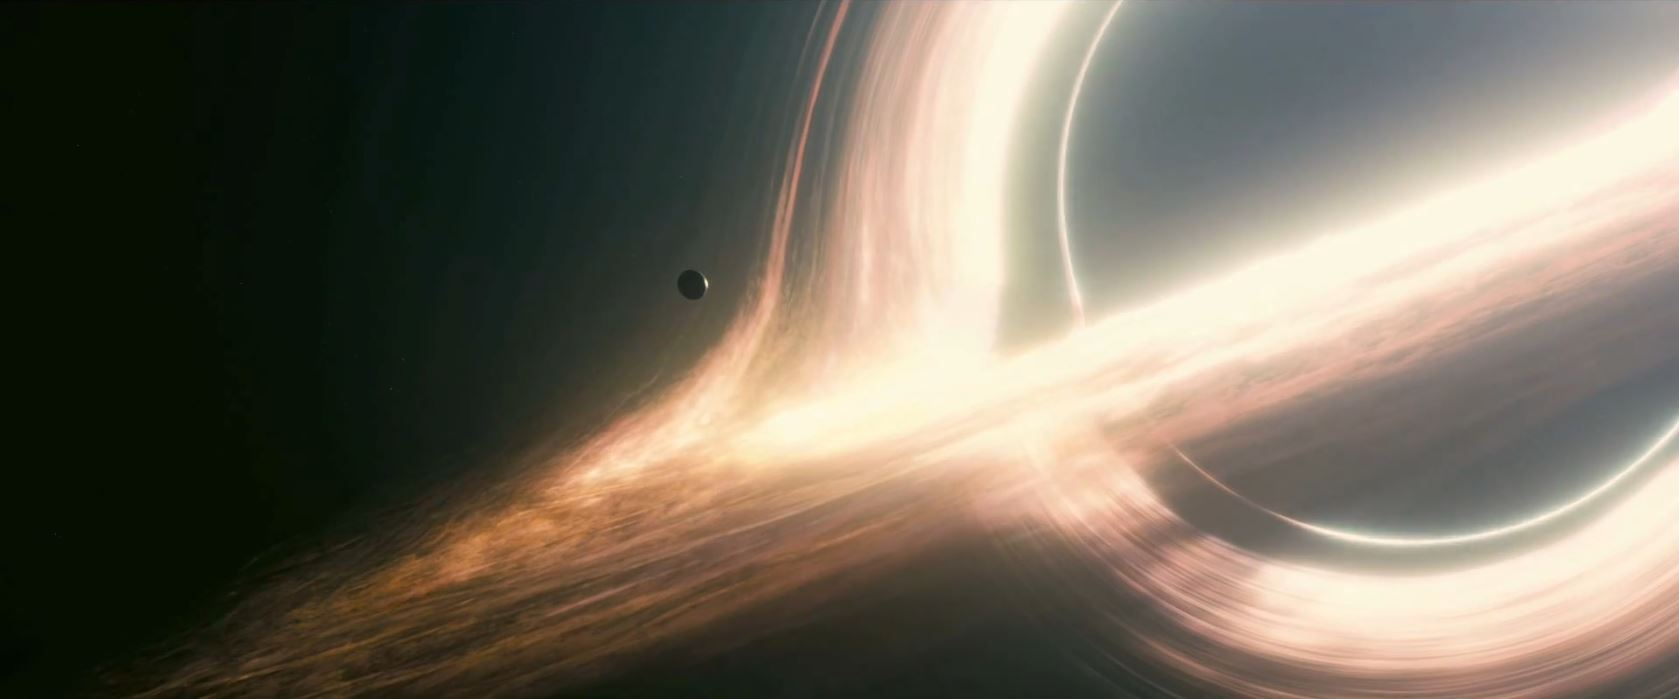 Interstellar trailer - space capsule